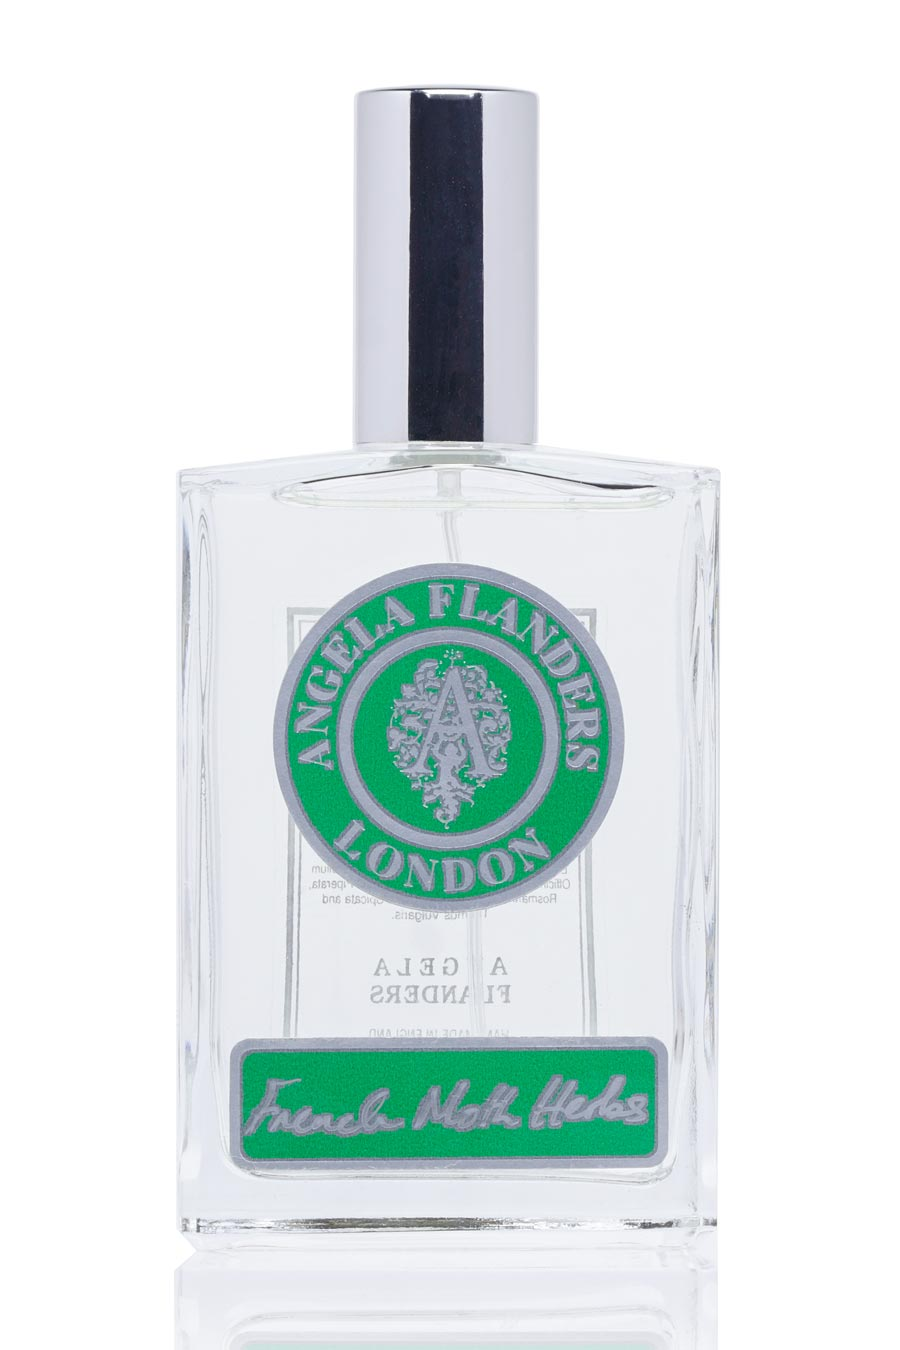 Angela Flanders French Moth Herbs Spray 100ml